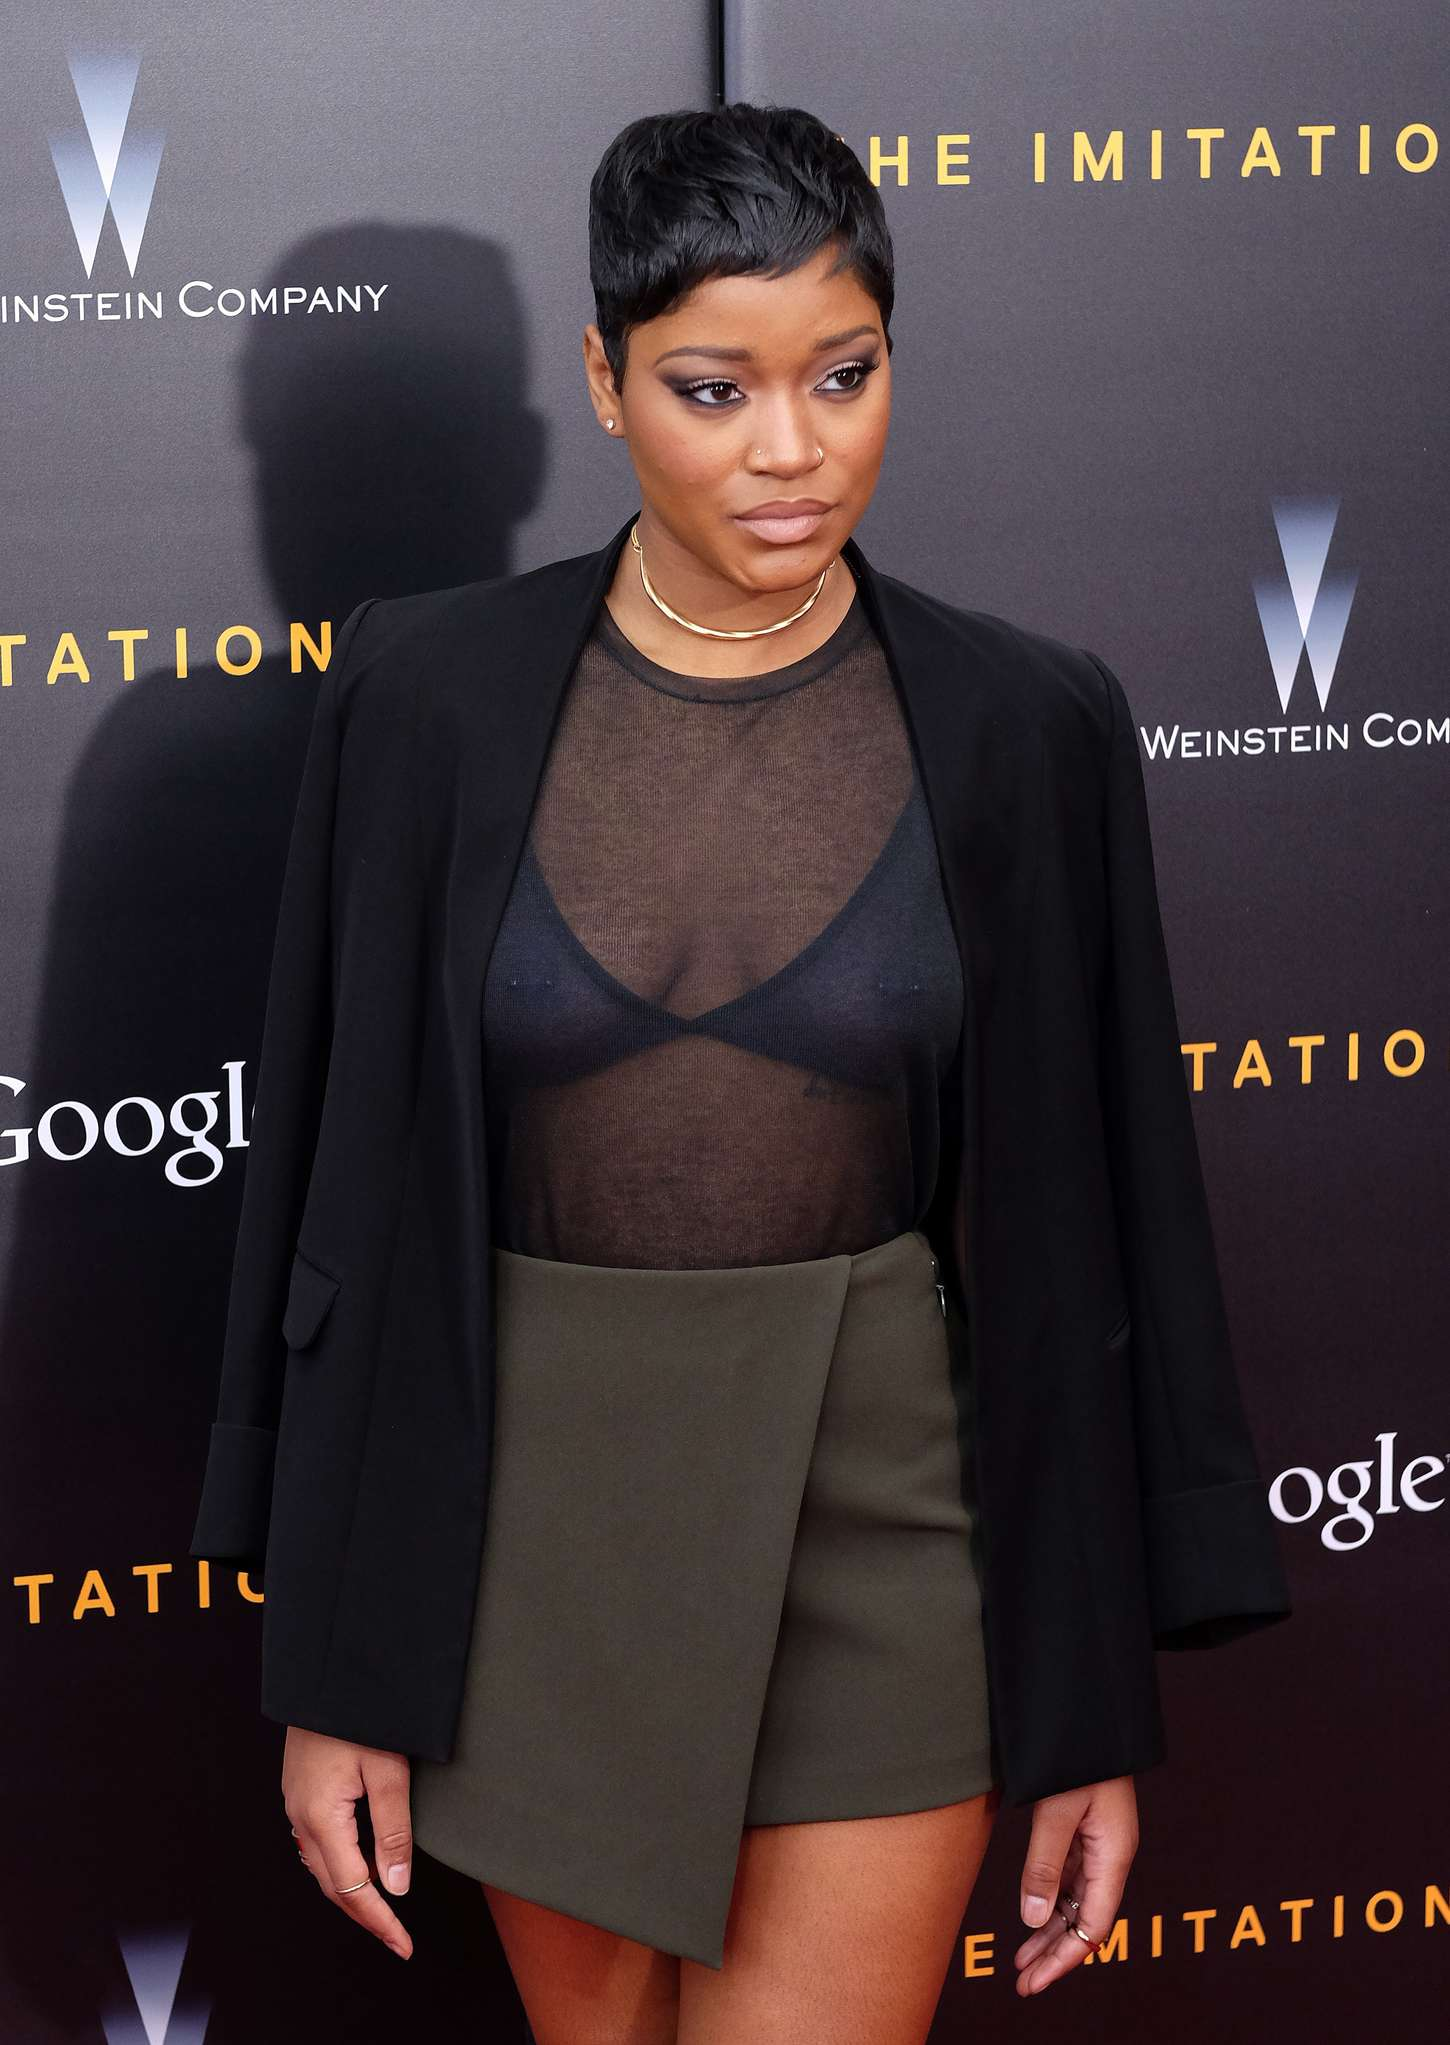 Keke Palmer The Imitation Game Premiere in New York